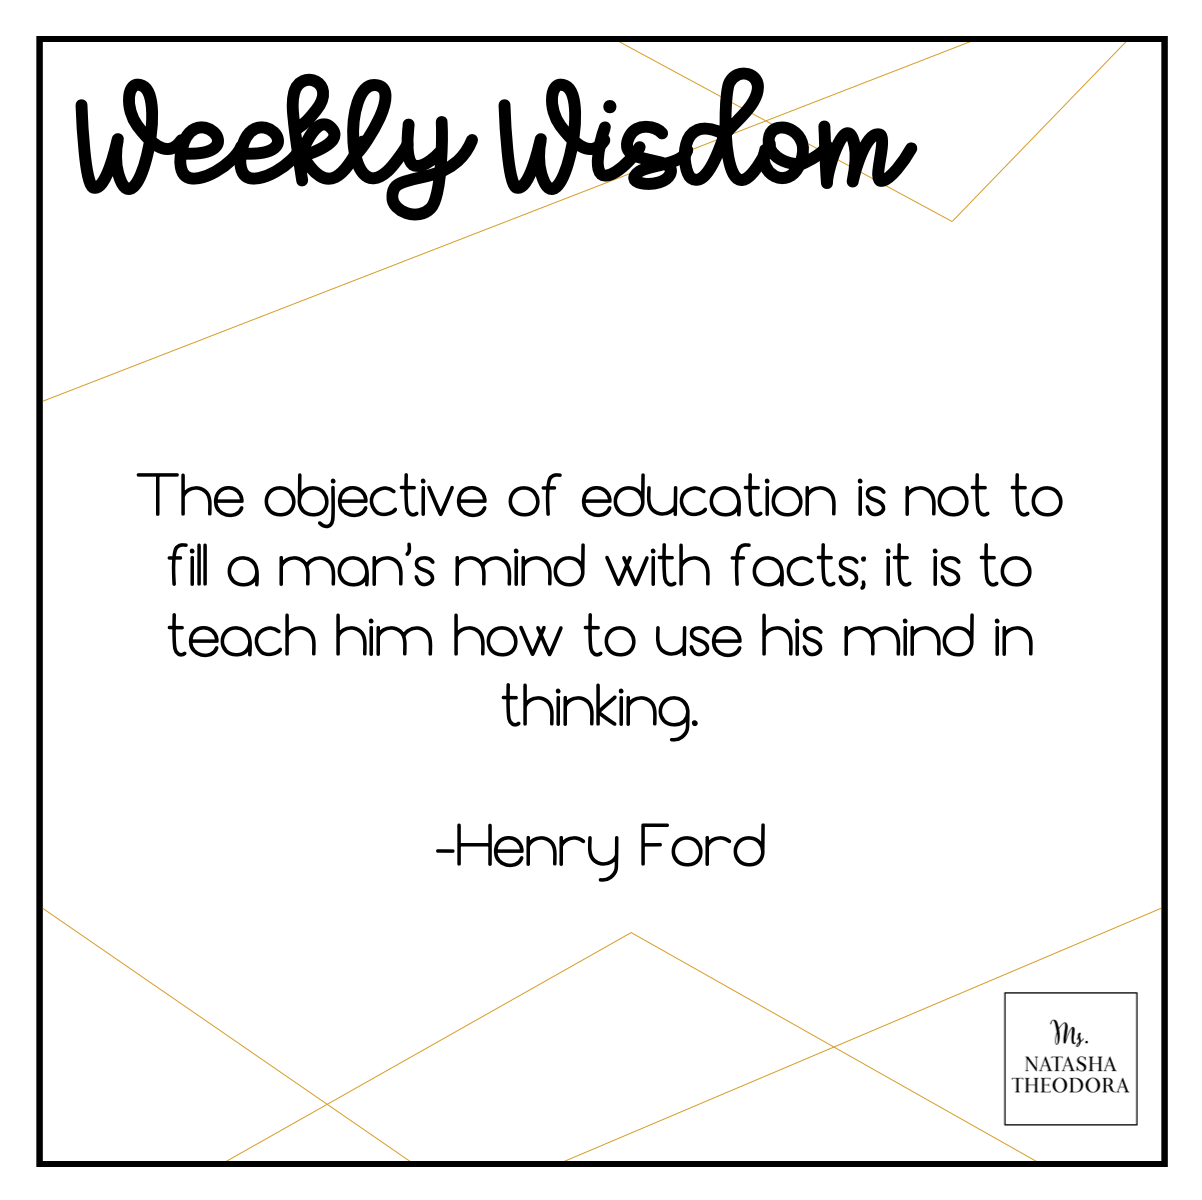 The objective of education is not to fill a man's mind with facts; it is to teach him how to use his mind in thinking. Henry Ford